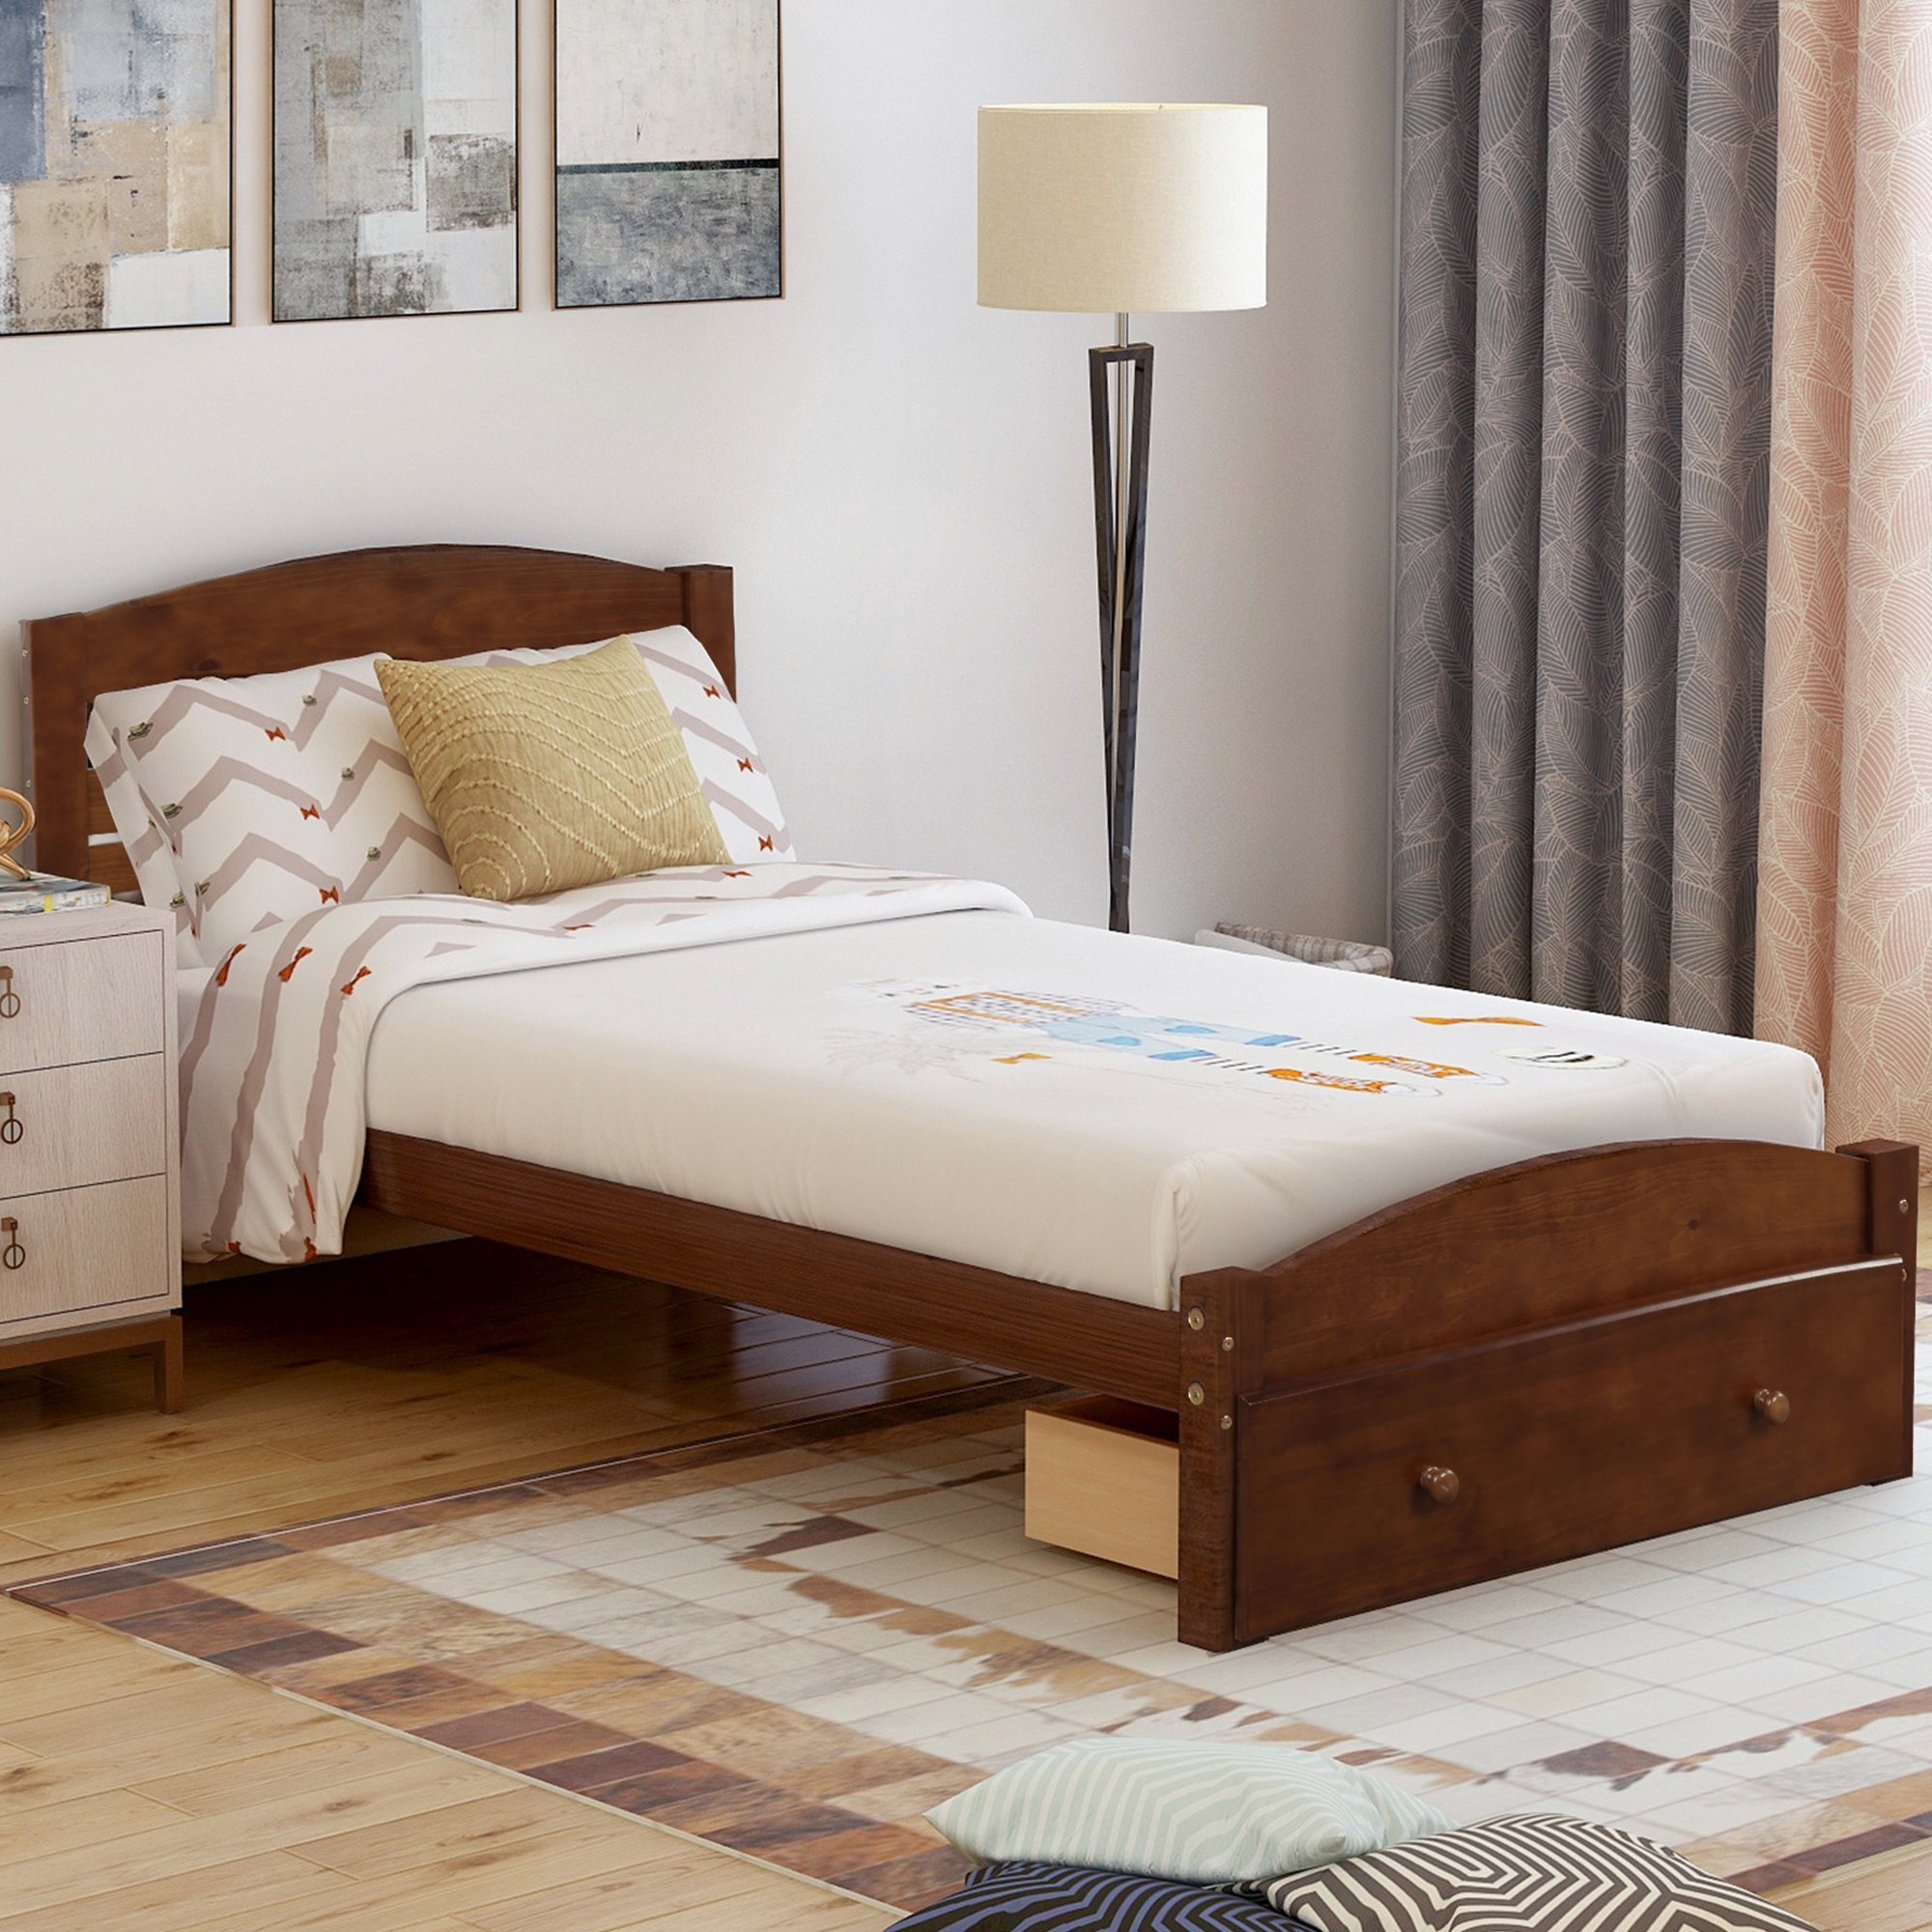 Picture of: Platform Bed Frame With Headboard And Footboard Classic Pine Wood Twin Bed Frame For Kids Modern Twin Size Bed Frame With Wood Slats Support Holds 275 Lb No Box Spring Needed Walnut